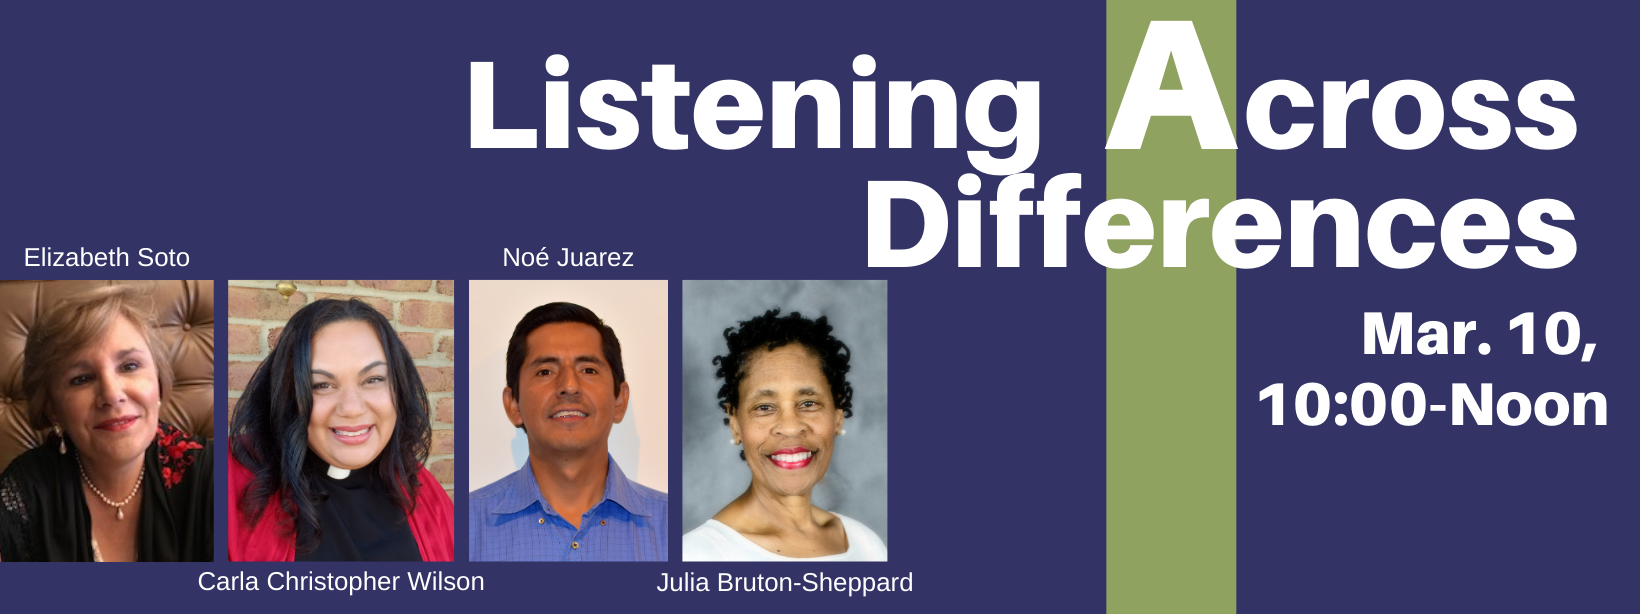 Listening Across Differences